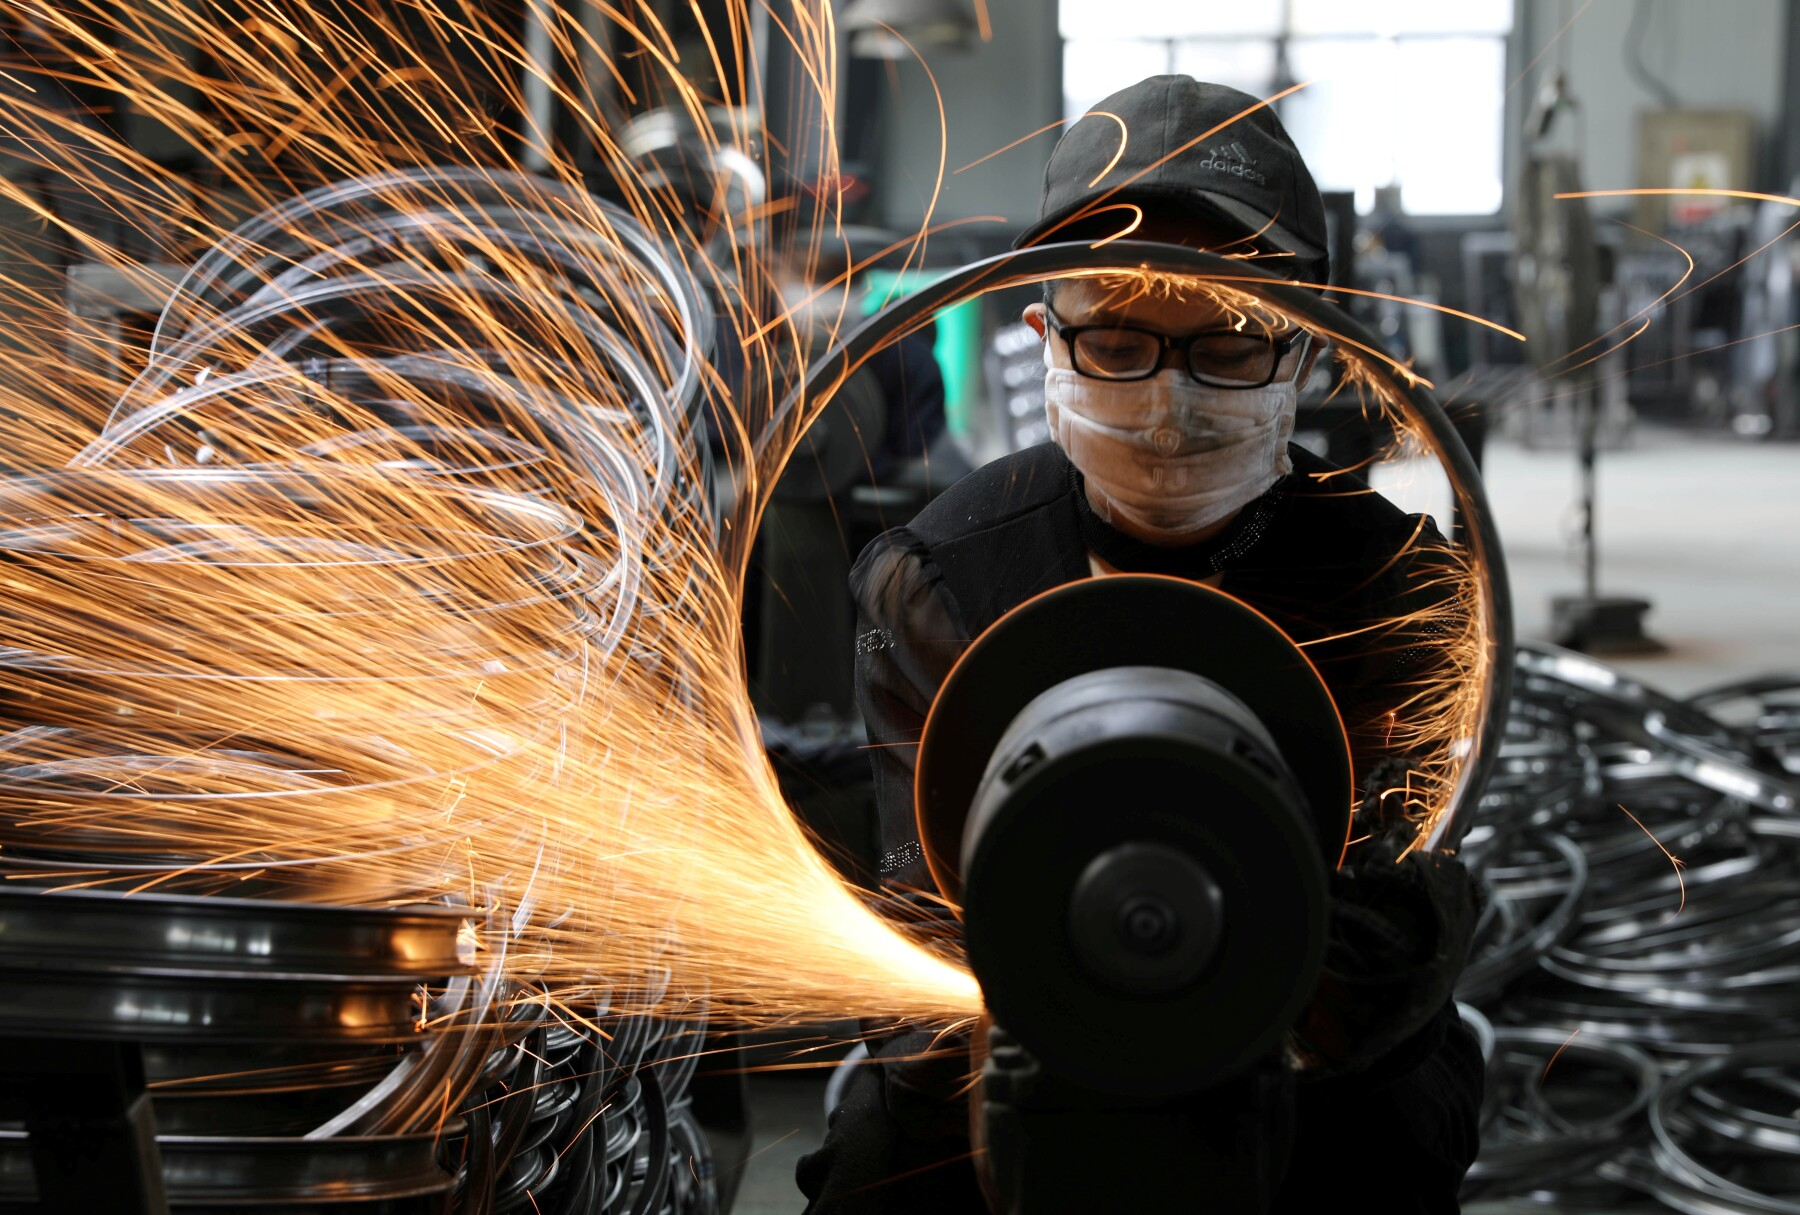 Worker welds a bicycle steel rim at a factory manufacturing sports equipment in Hangzhou, Zhejiang